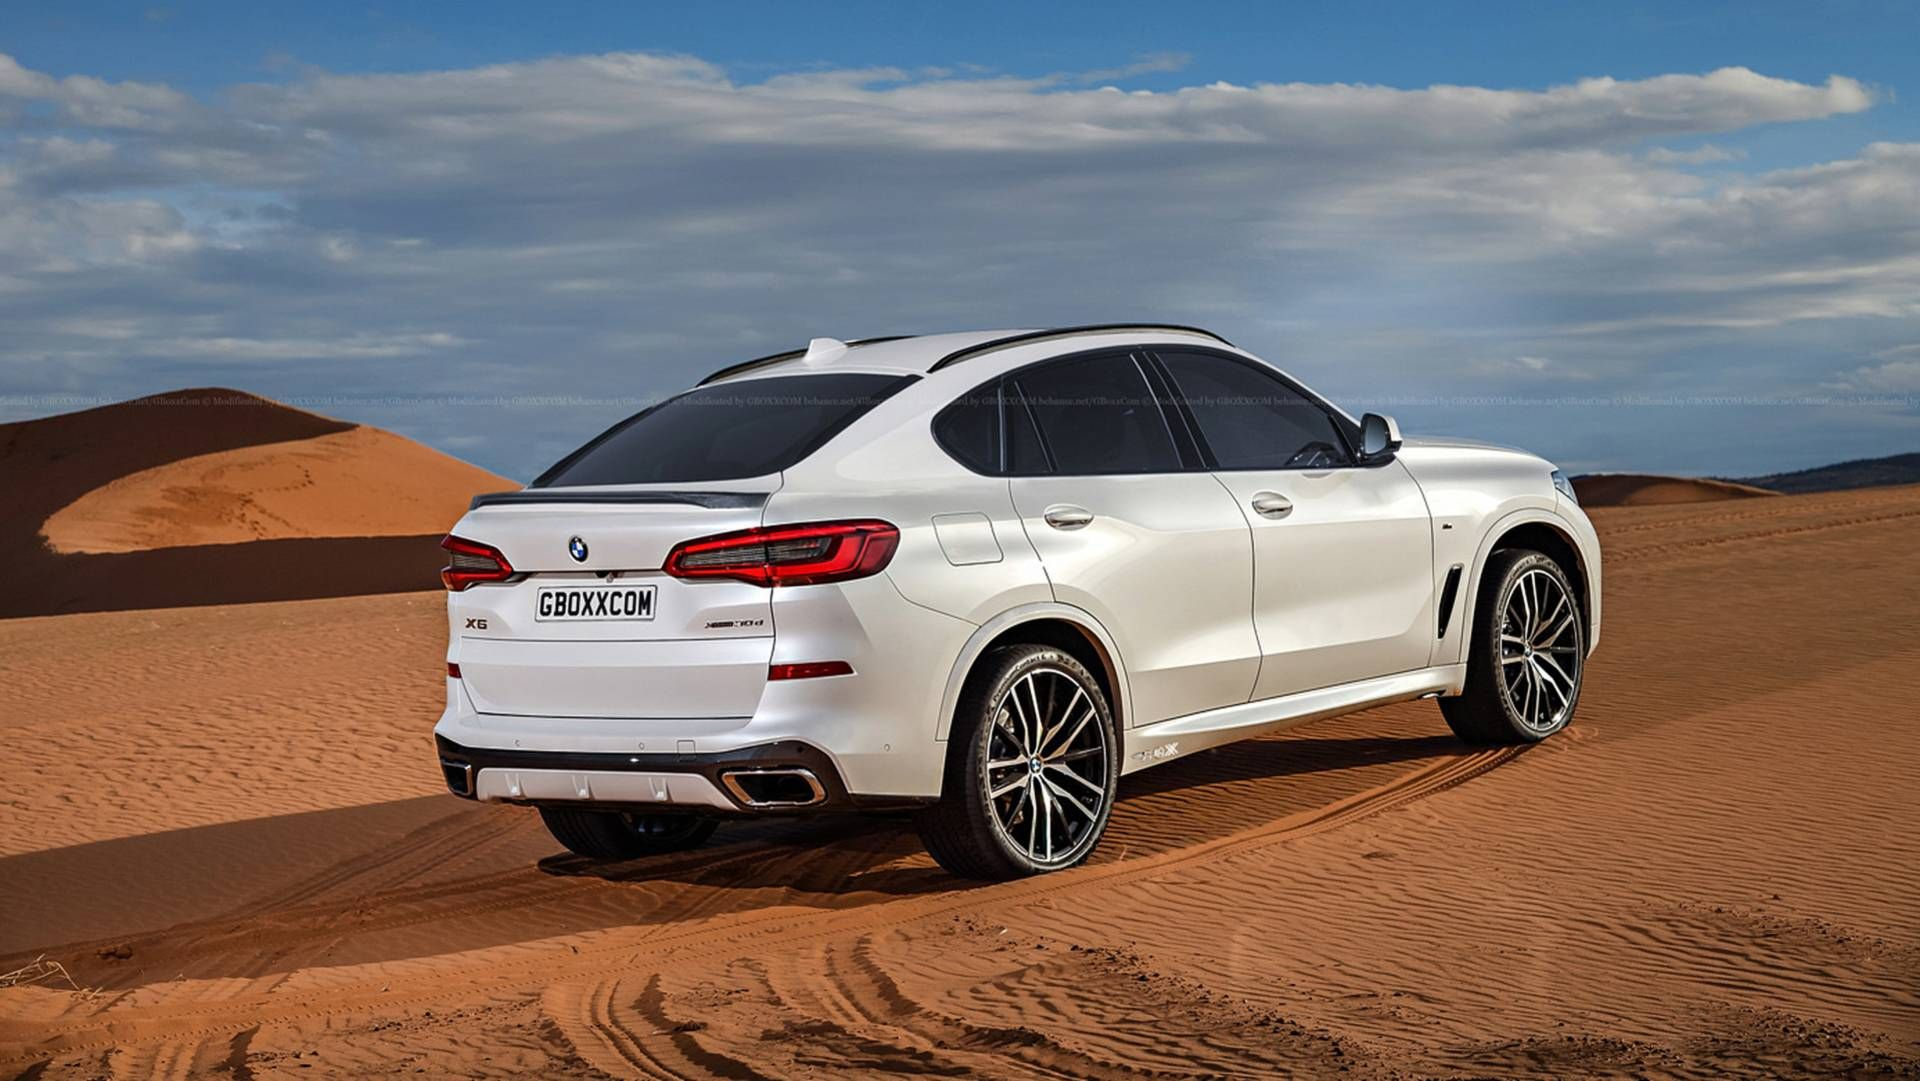 Upcoming Bmw X6 Easily Rendered From The New X5 Shots With Images